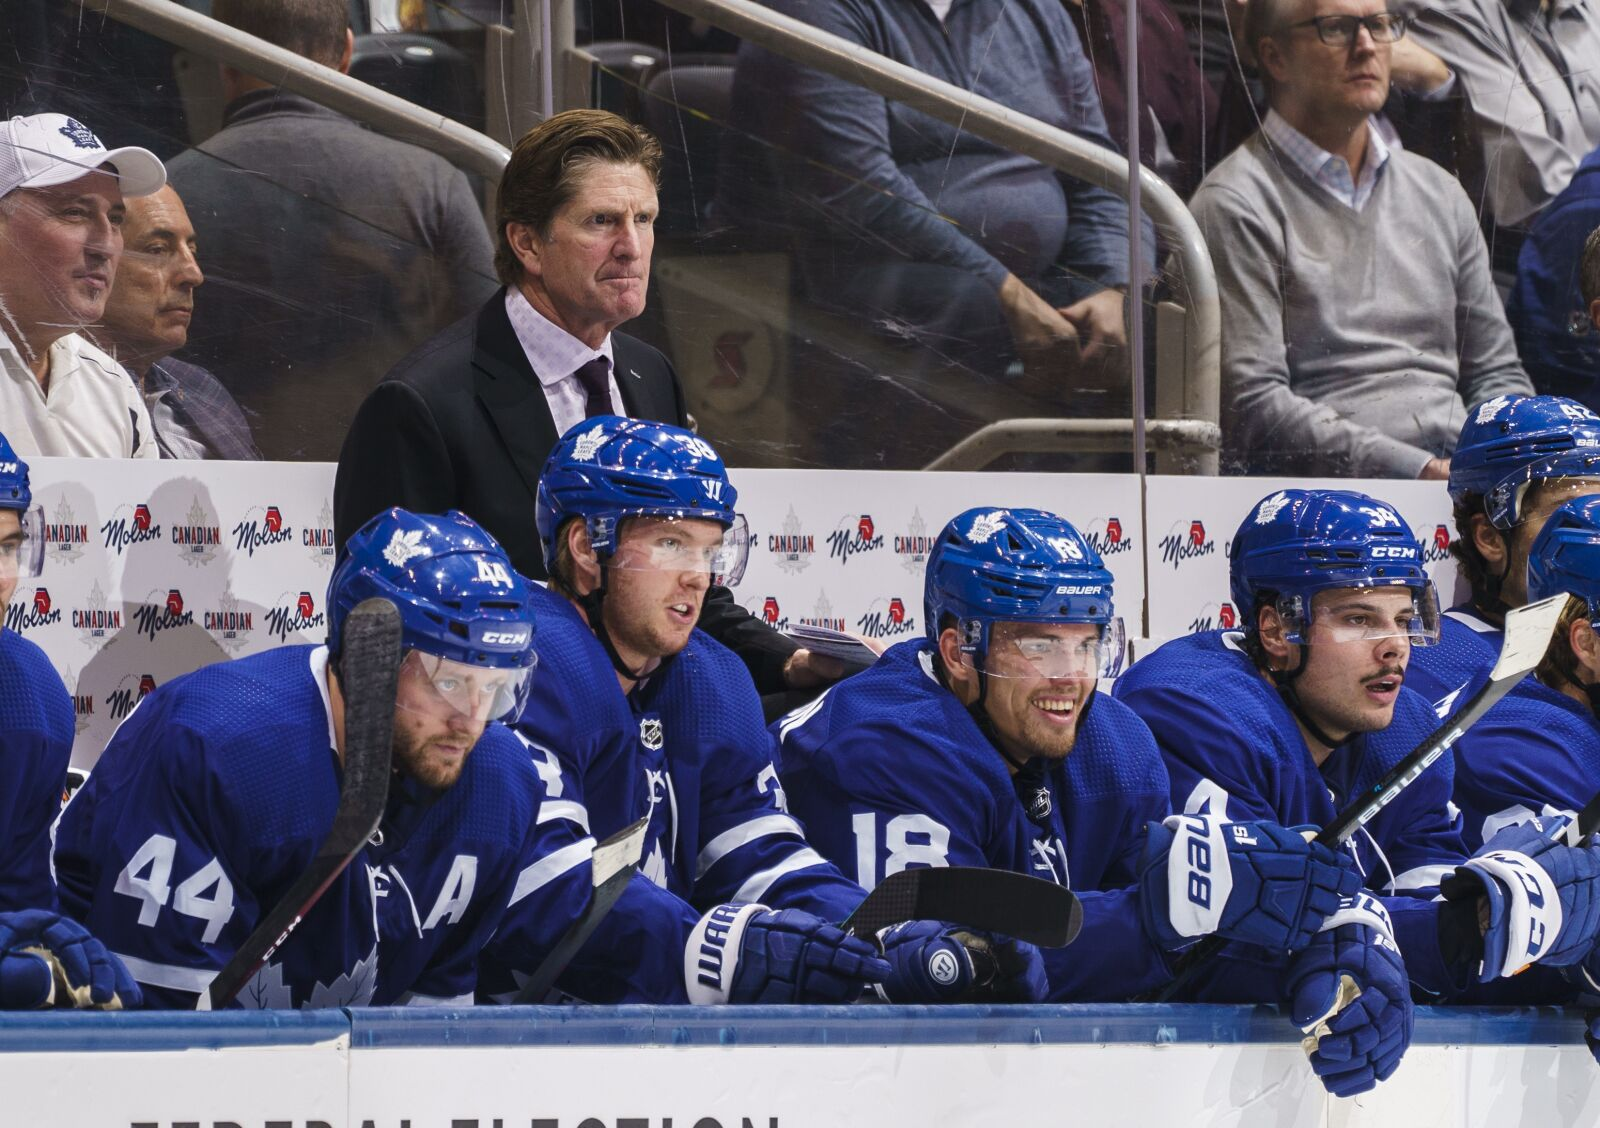 Toronto Maple Leafs Bomb: An Absolute Disgusting Display of Hockey